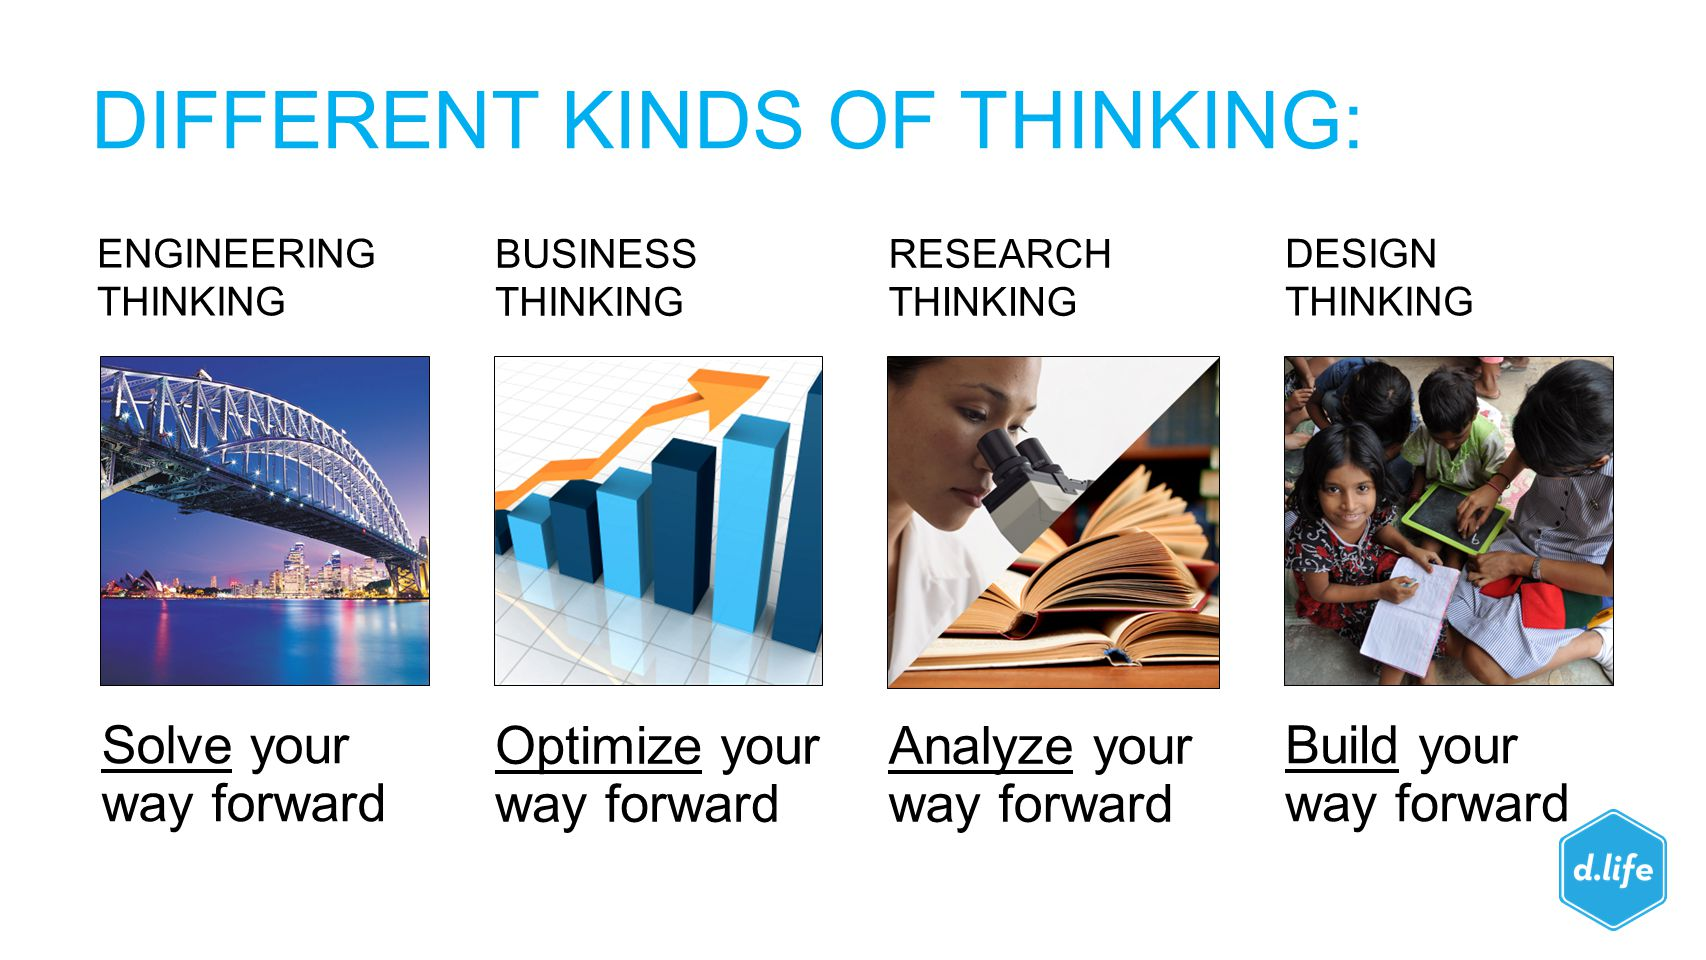 ENGINEERING THINKING Solve your way forward BUSINESS THINKING DESIGN THINKING Optimize your way forward Build your way forward RESEARCH THINKING Analy